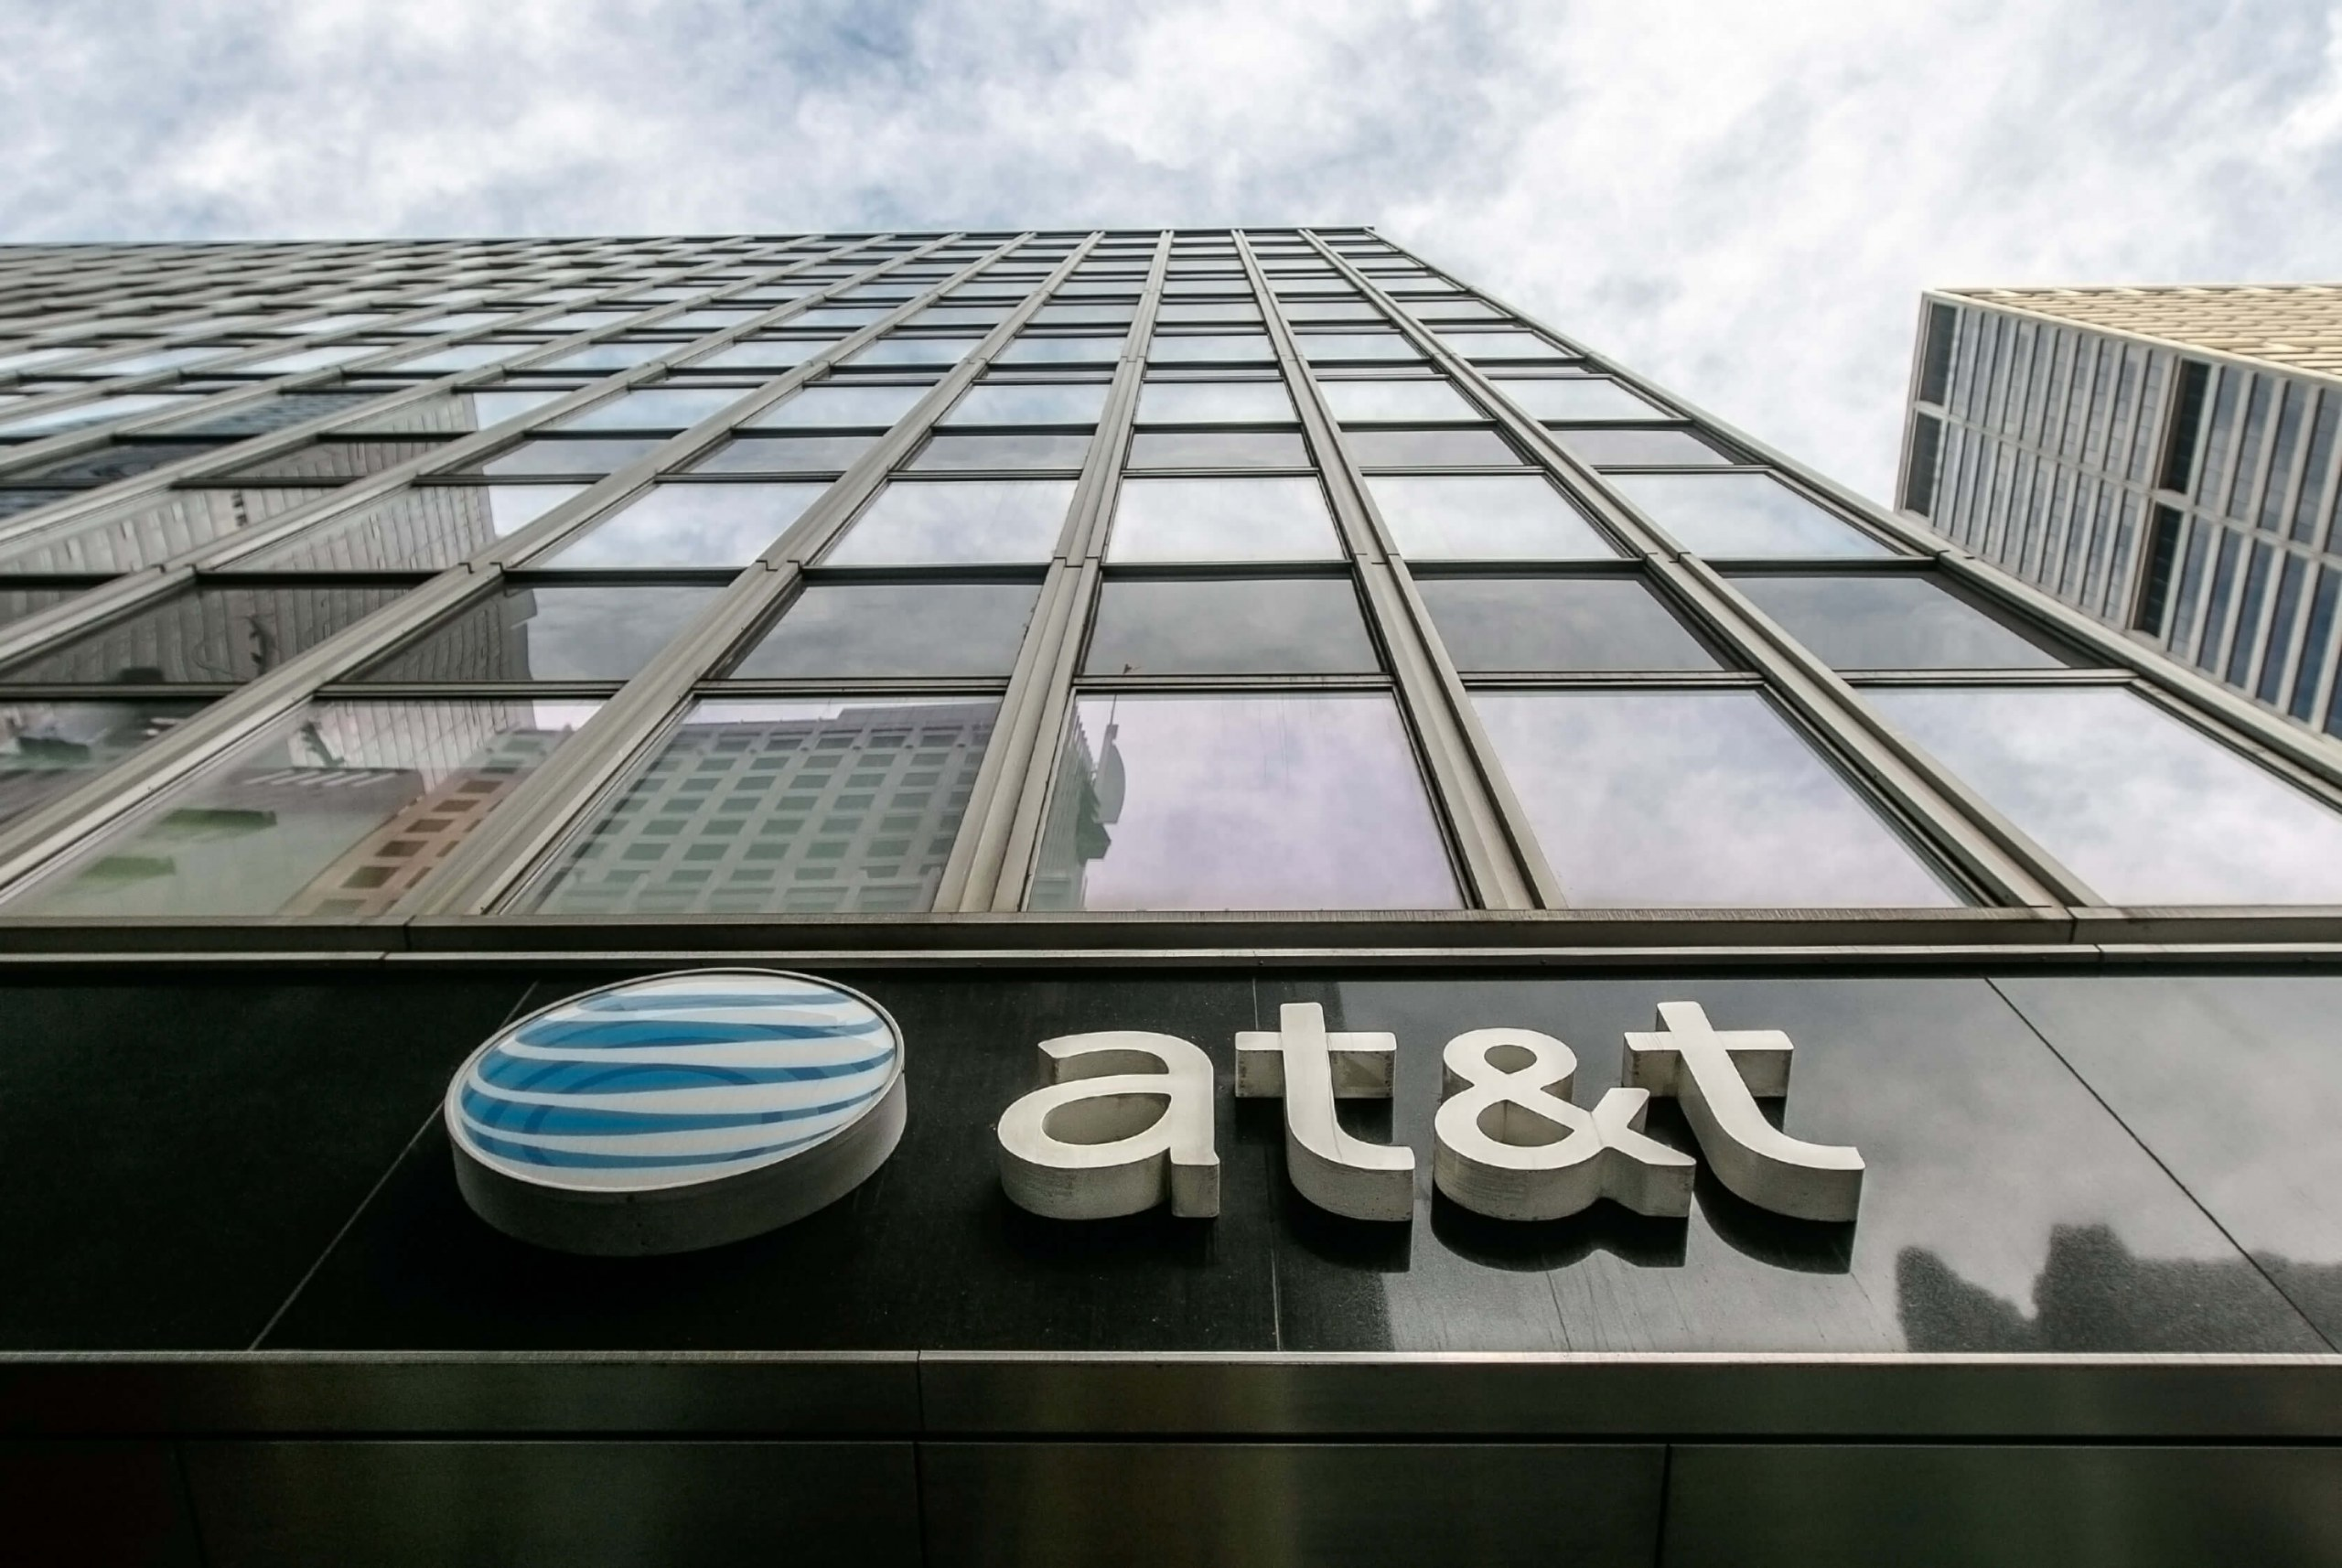 AT&T to begin call authentication to screen out fraudulent callers